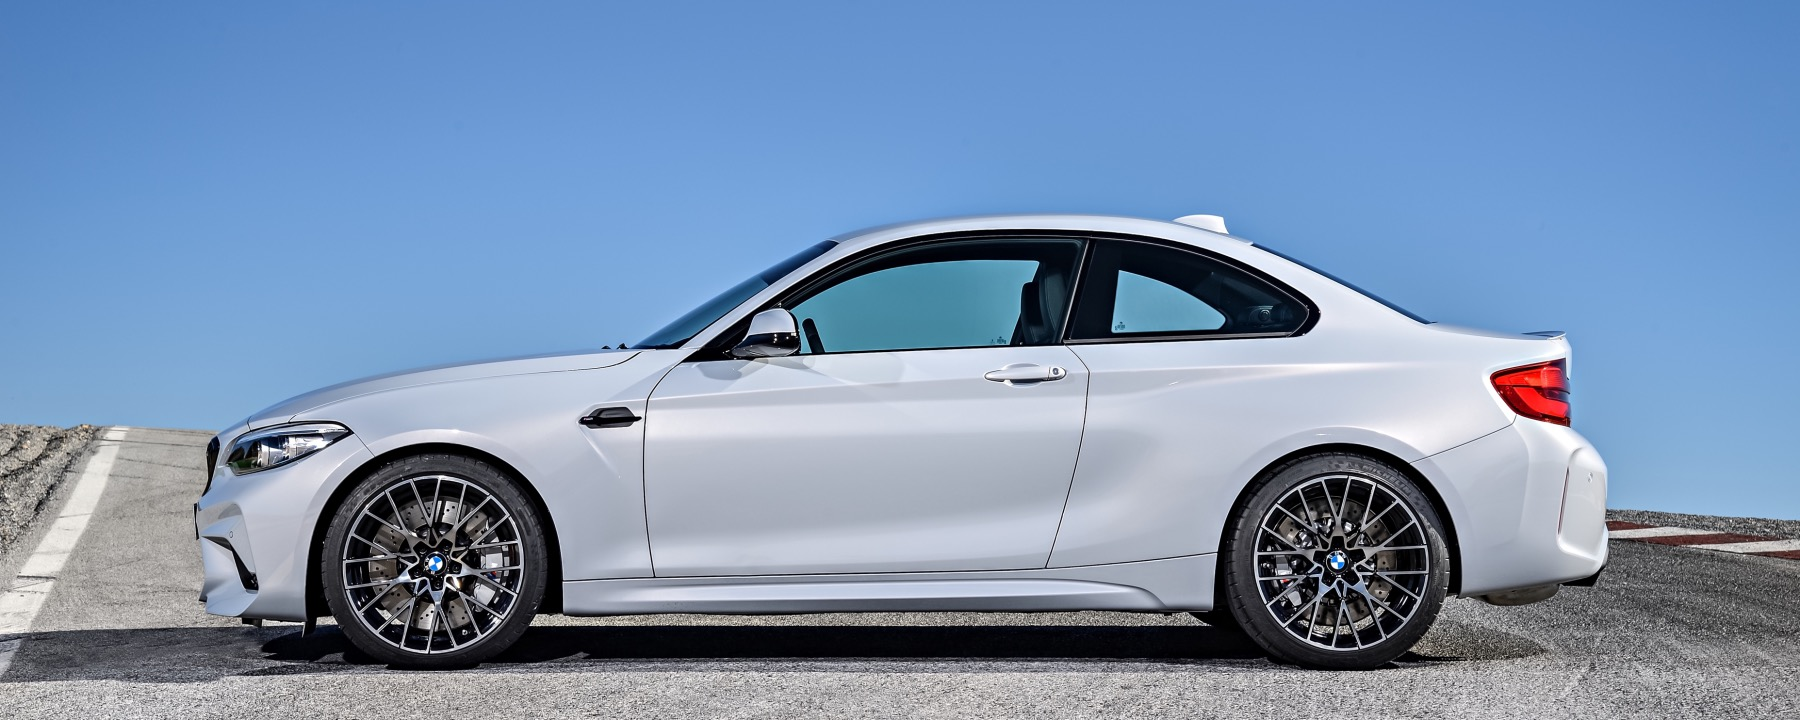 Land Rover Houston North >> The New BMW M2 Competition Model - indiGO Auto Group Blog